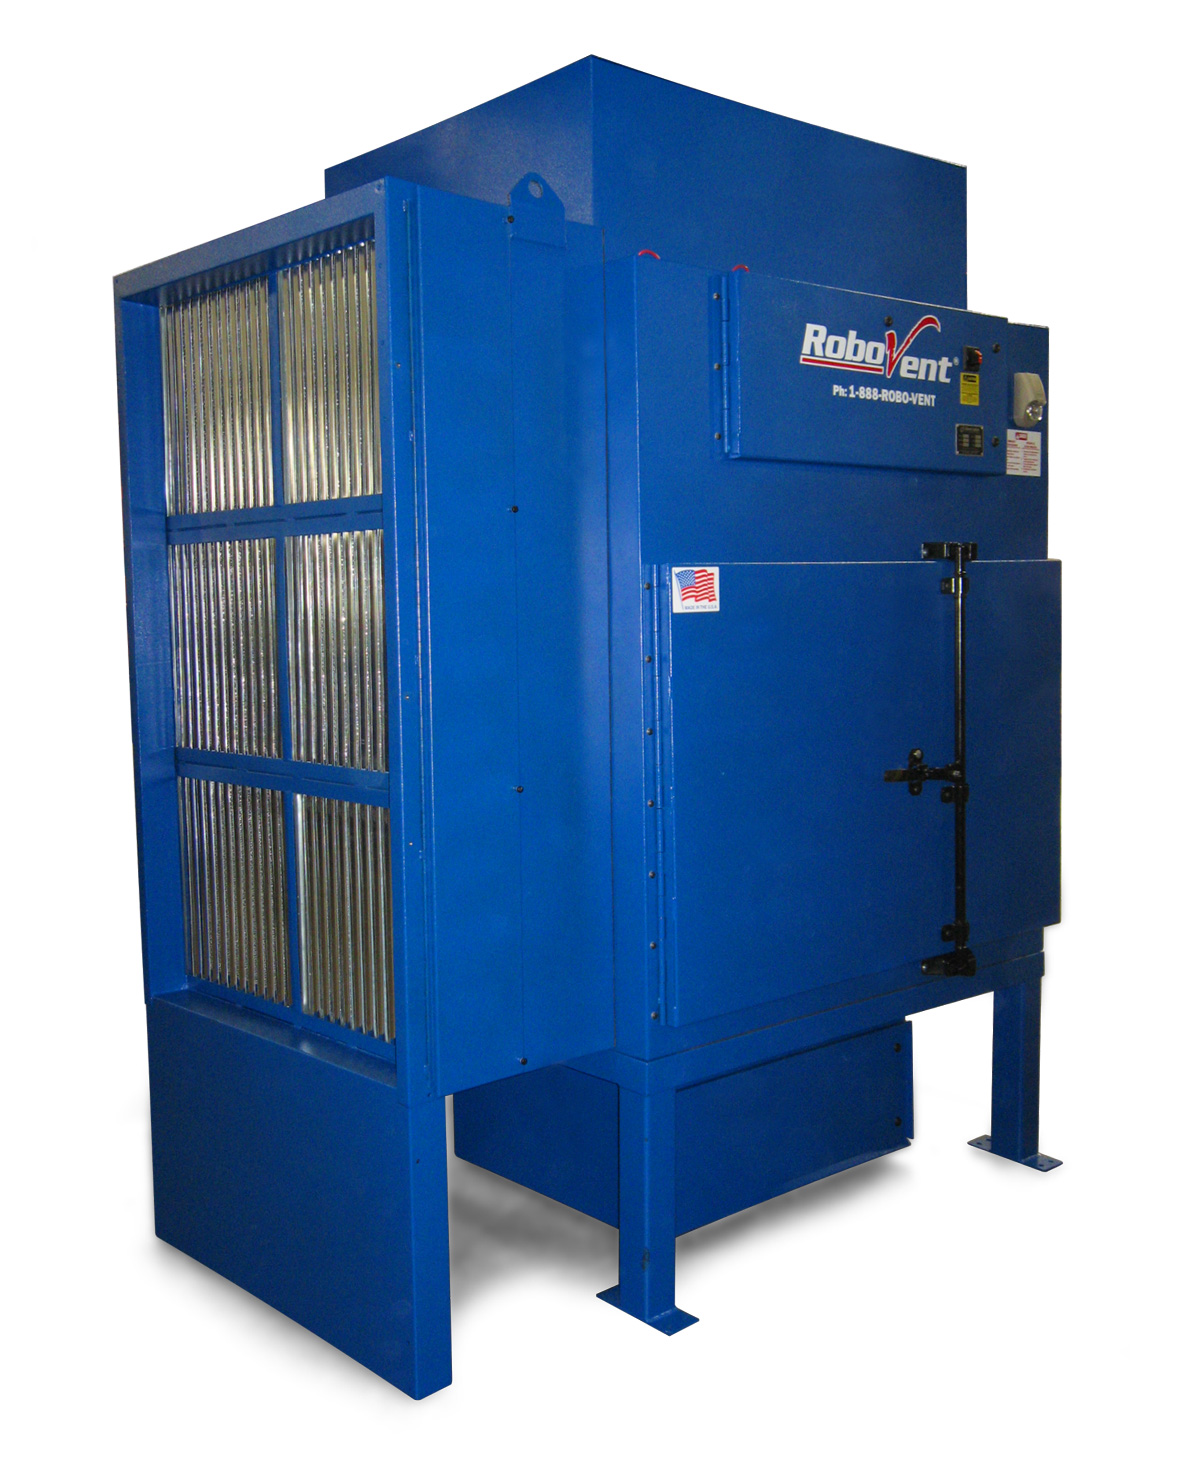 WeldCat Series, Air Filtration for Robotic Welding